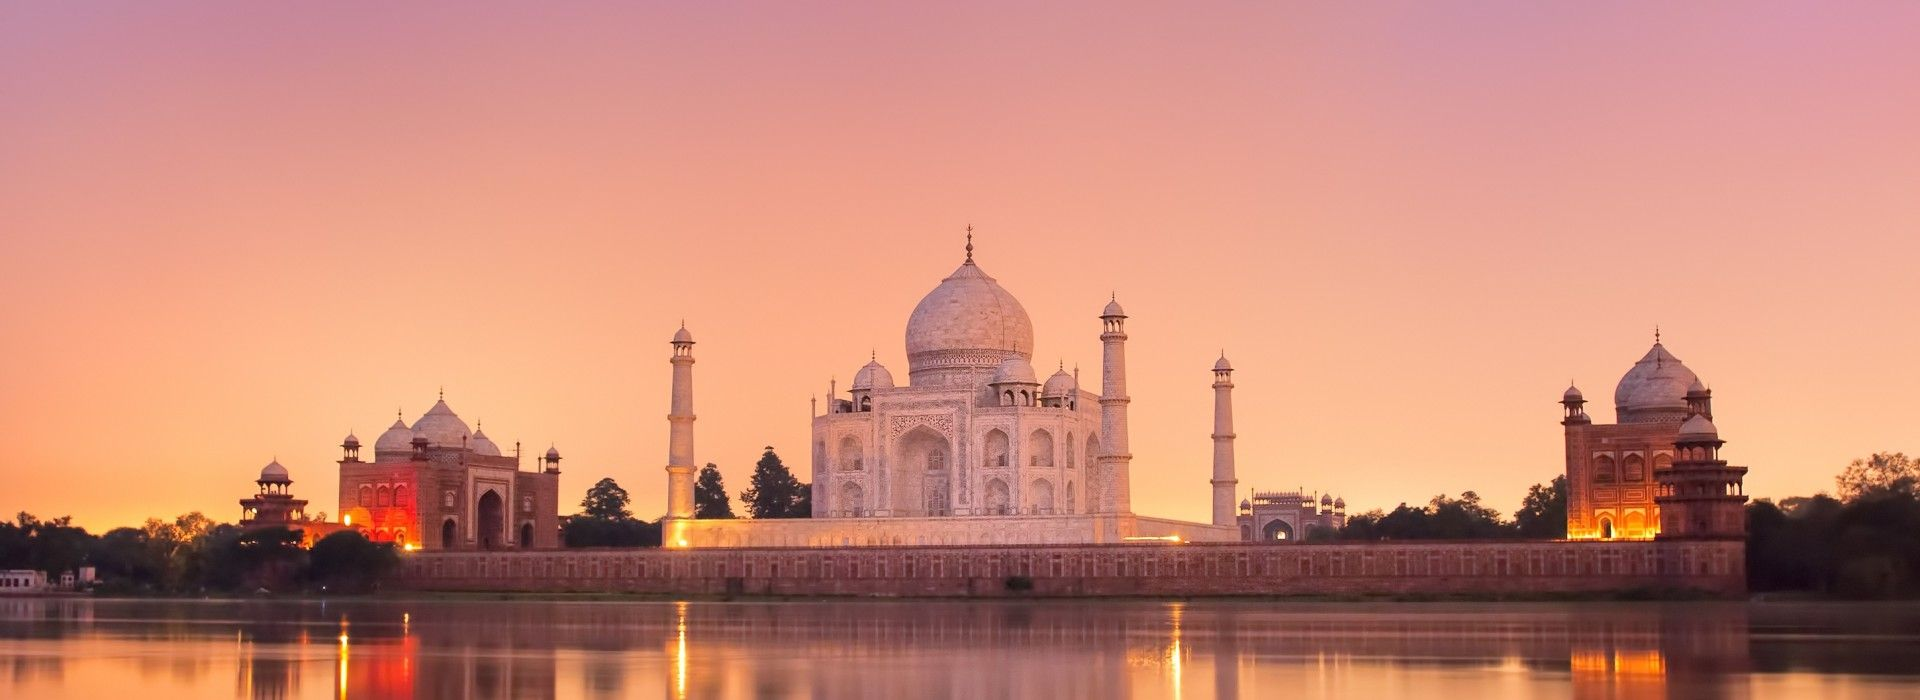 Food, wine, events and nightlife Tours in India